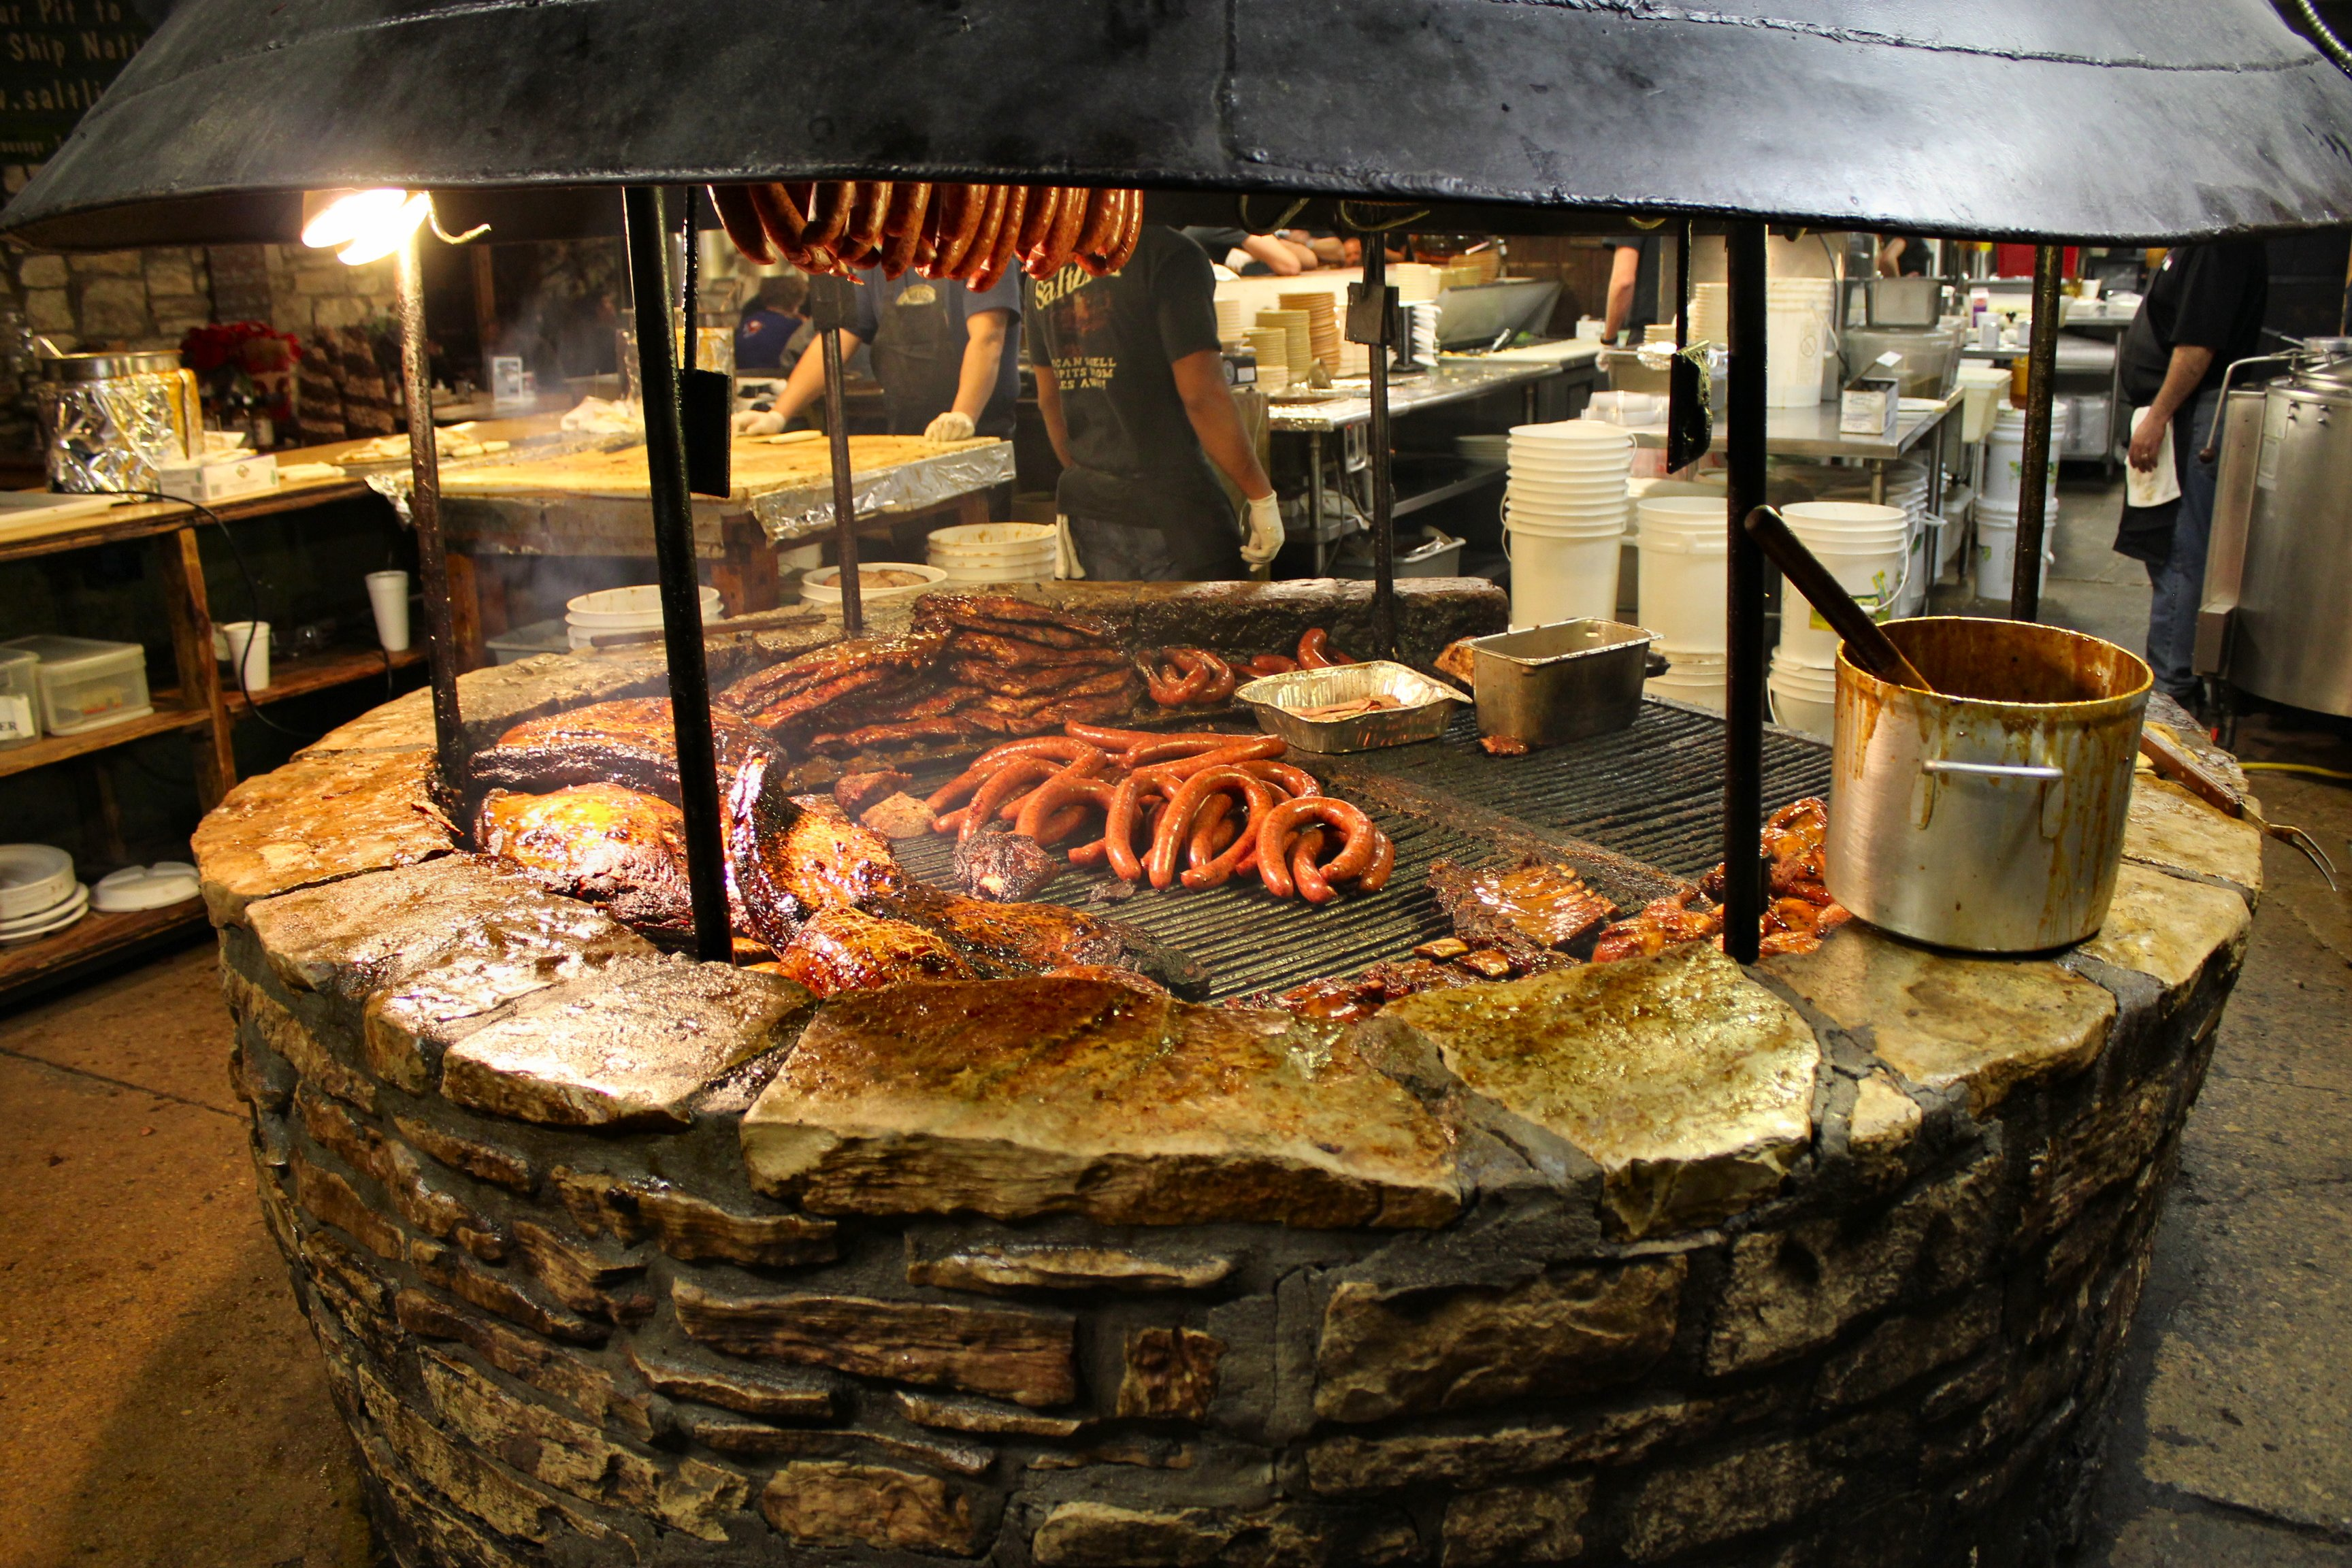 At the salt lick